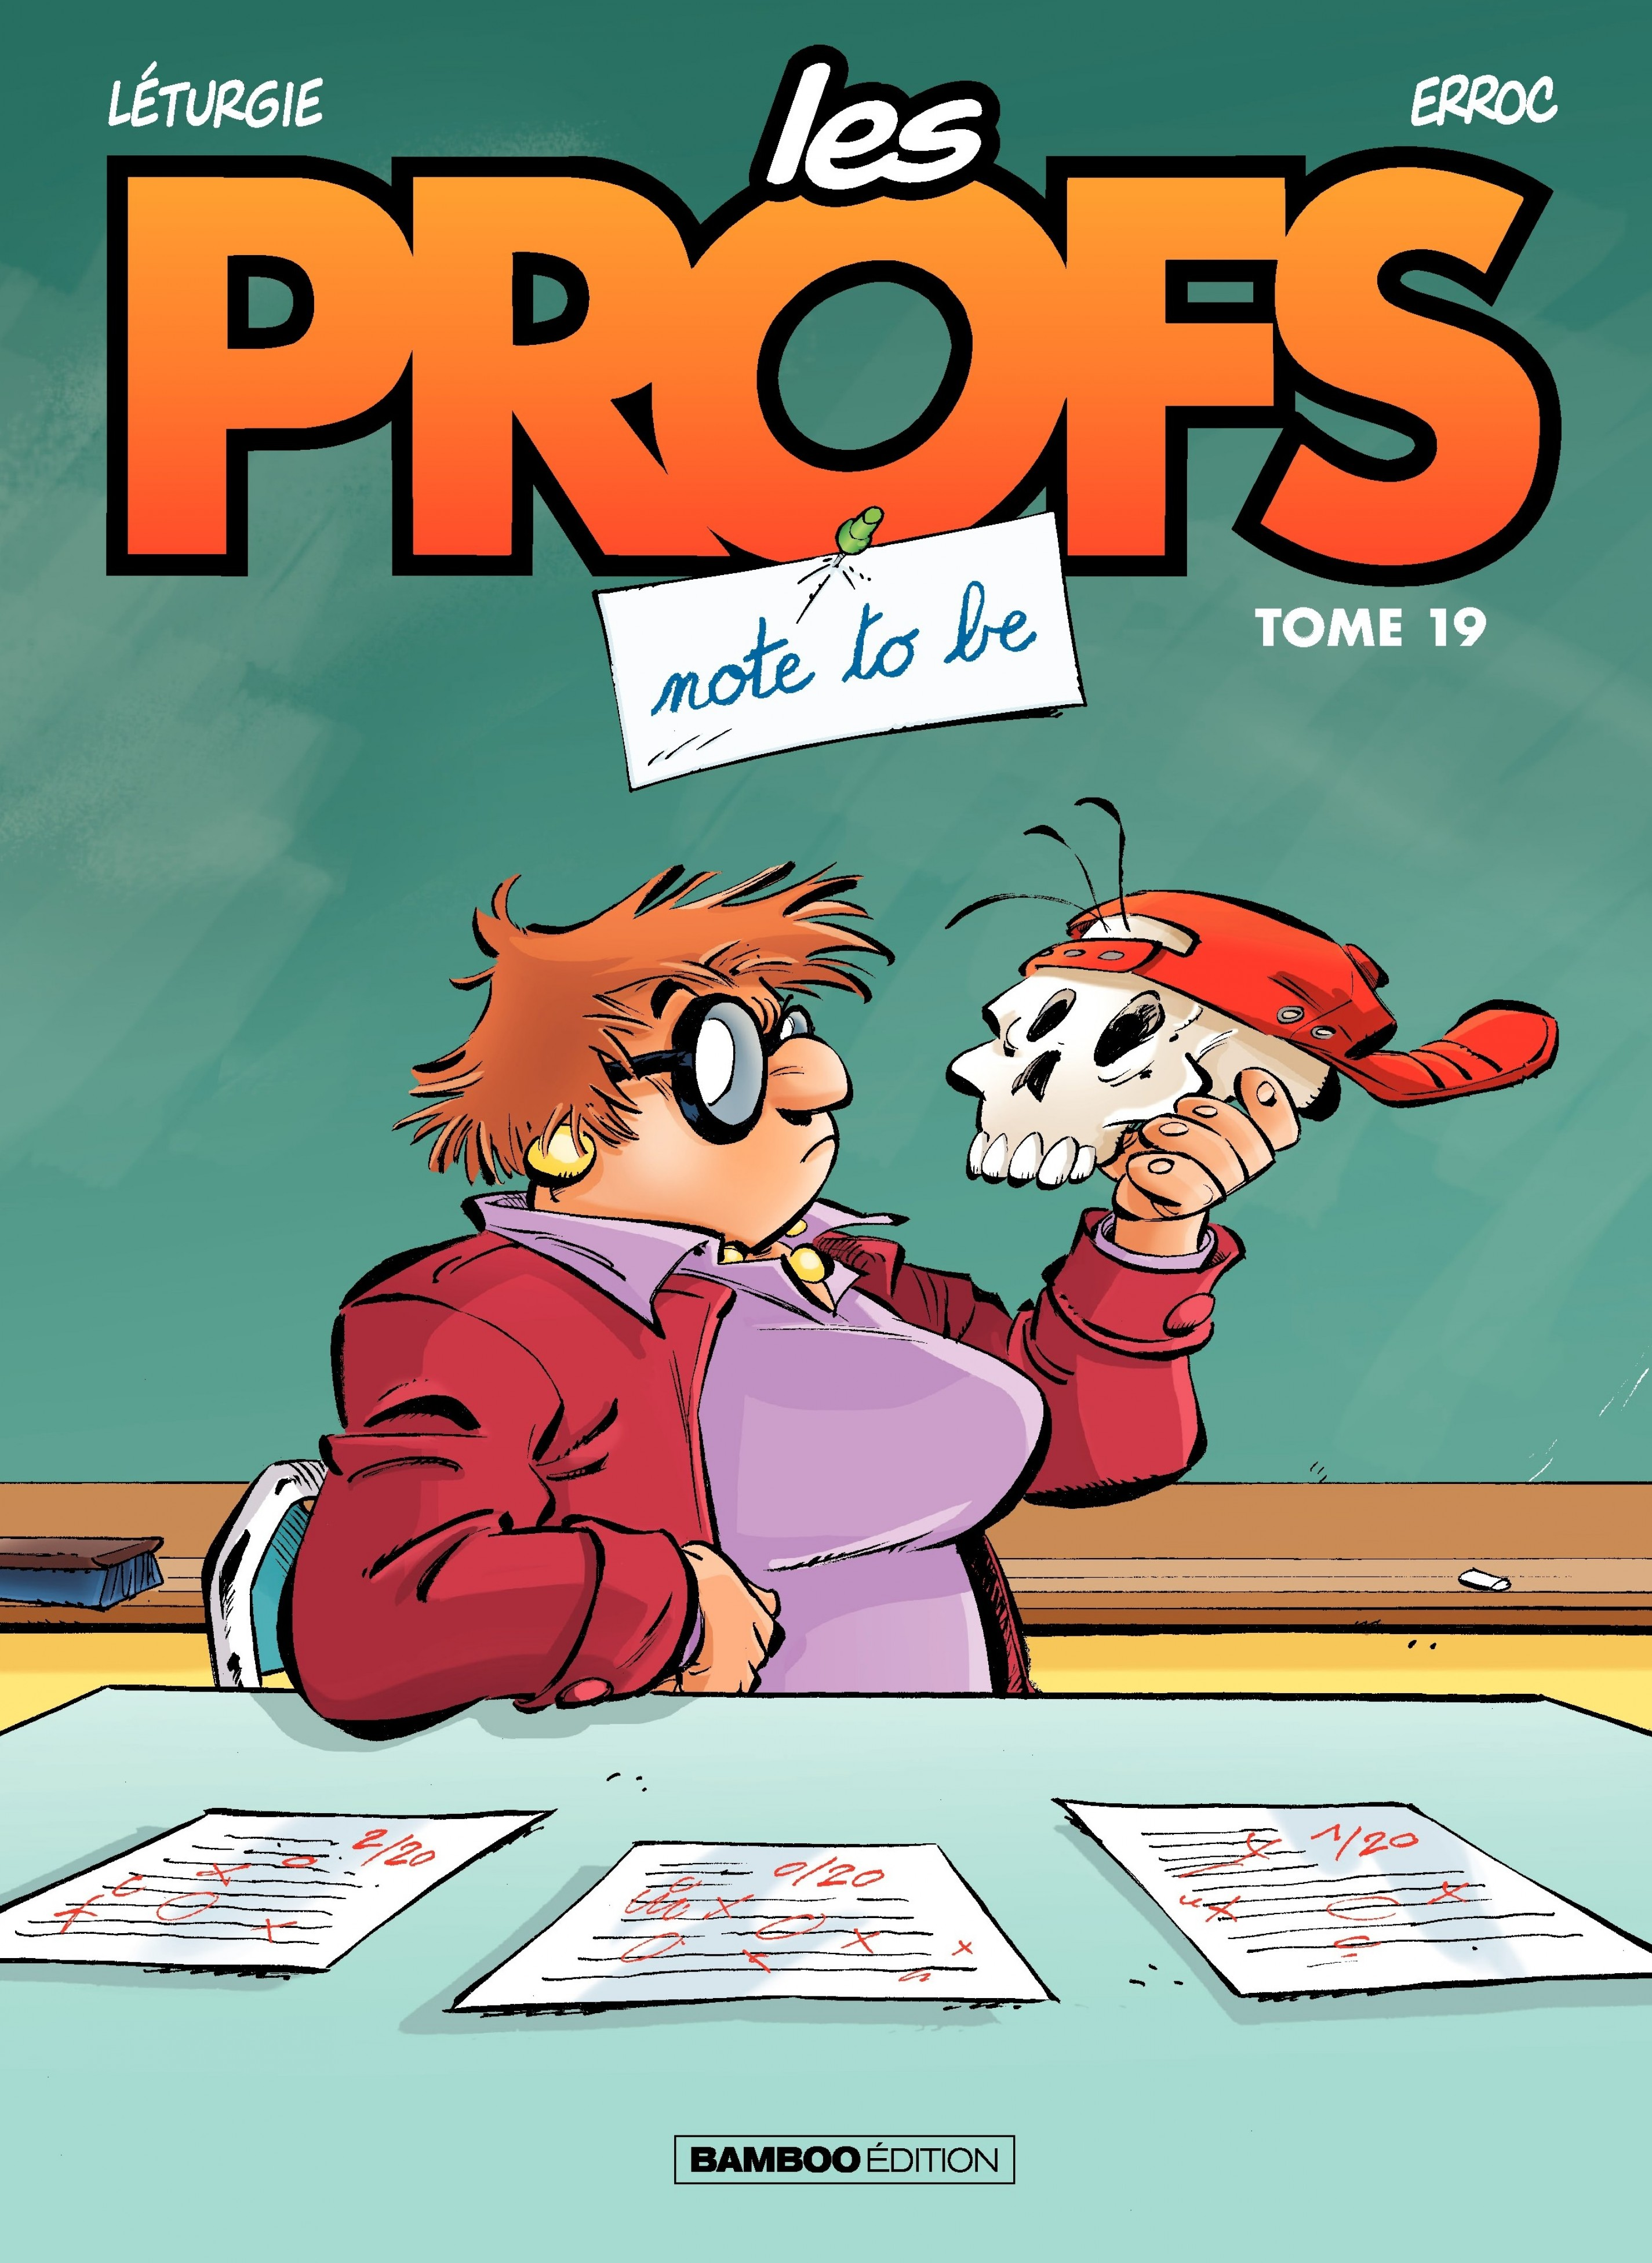 Les Profs - Tome 19 - Note ...